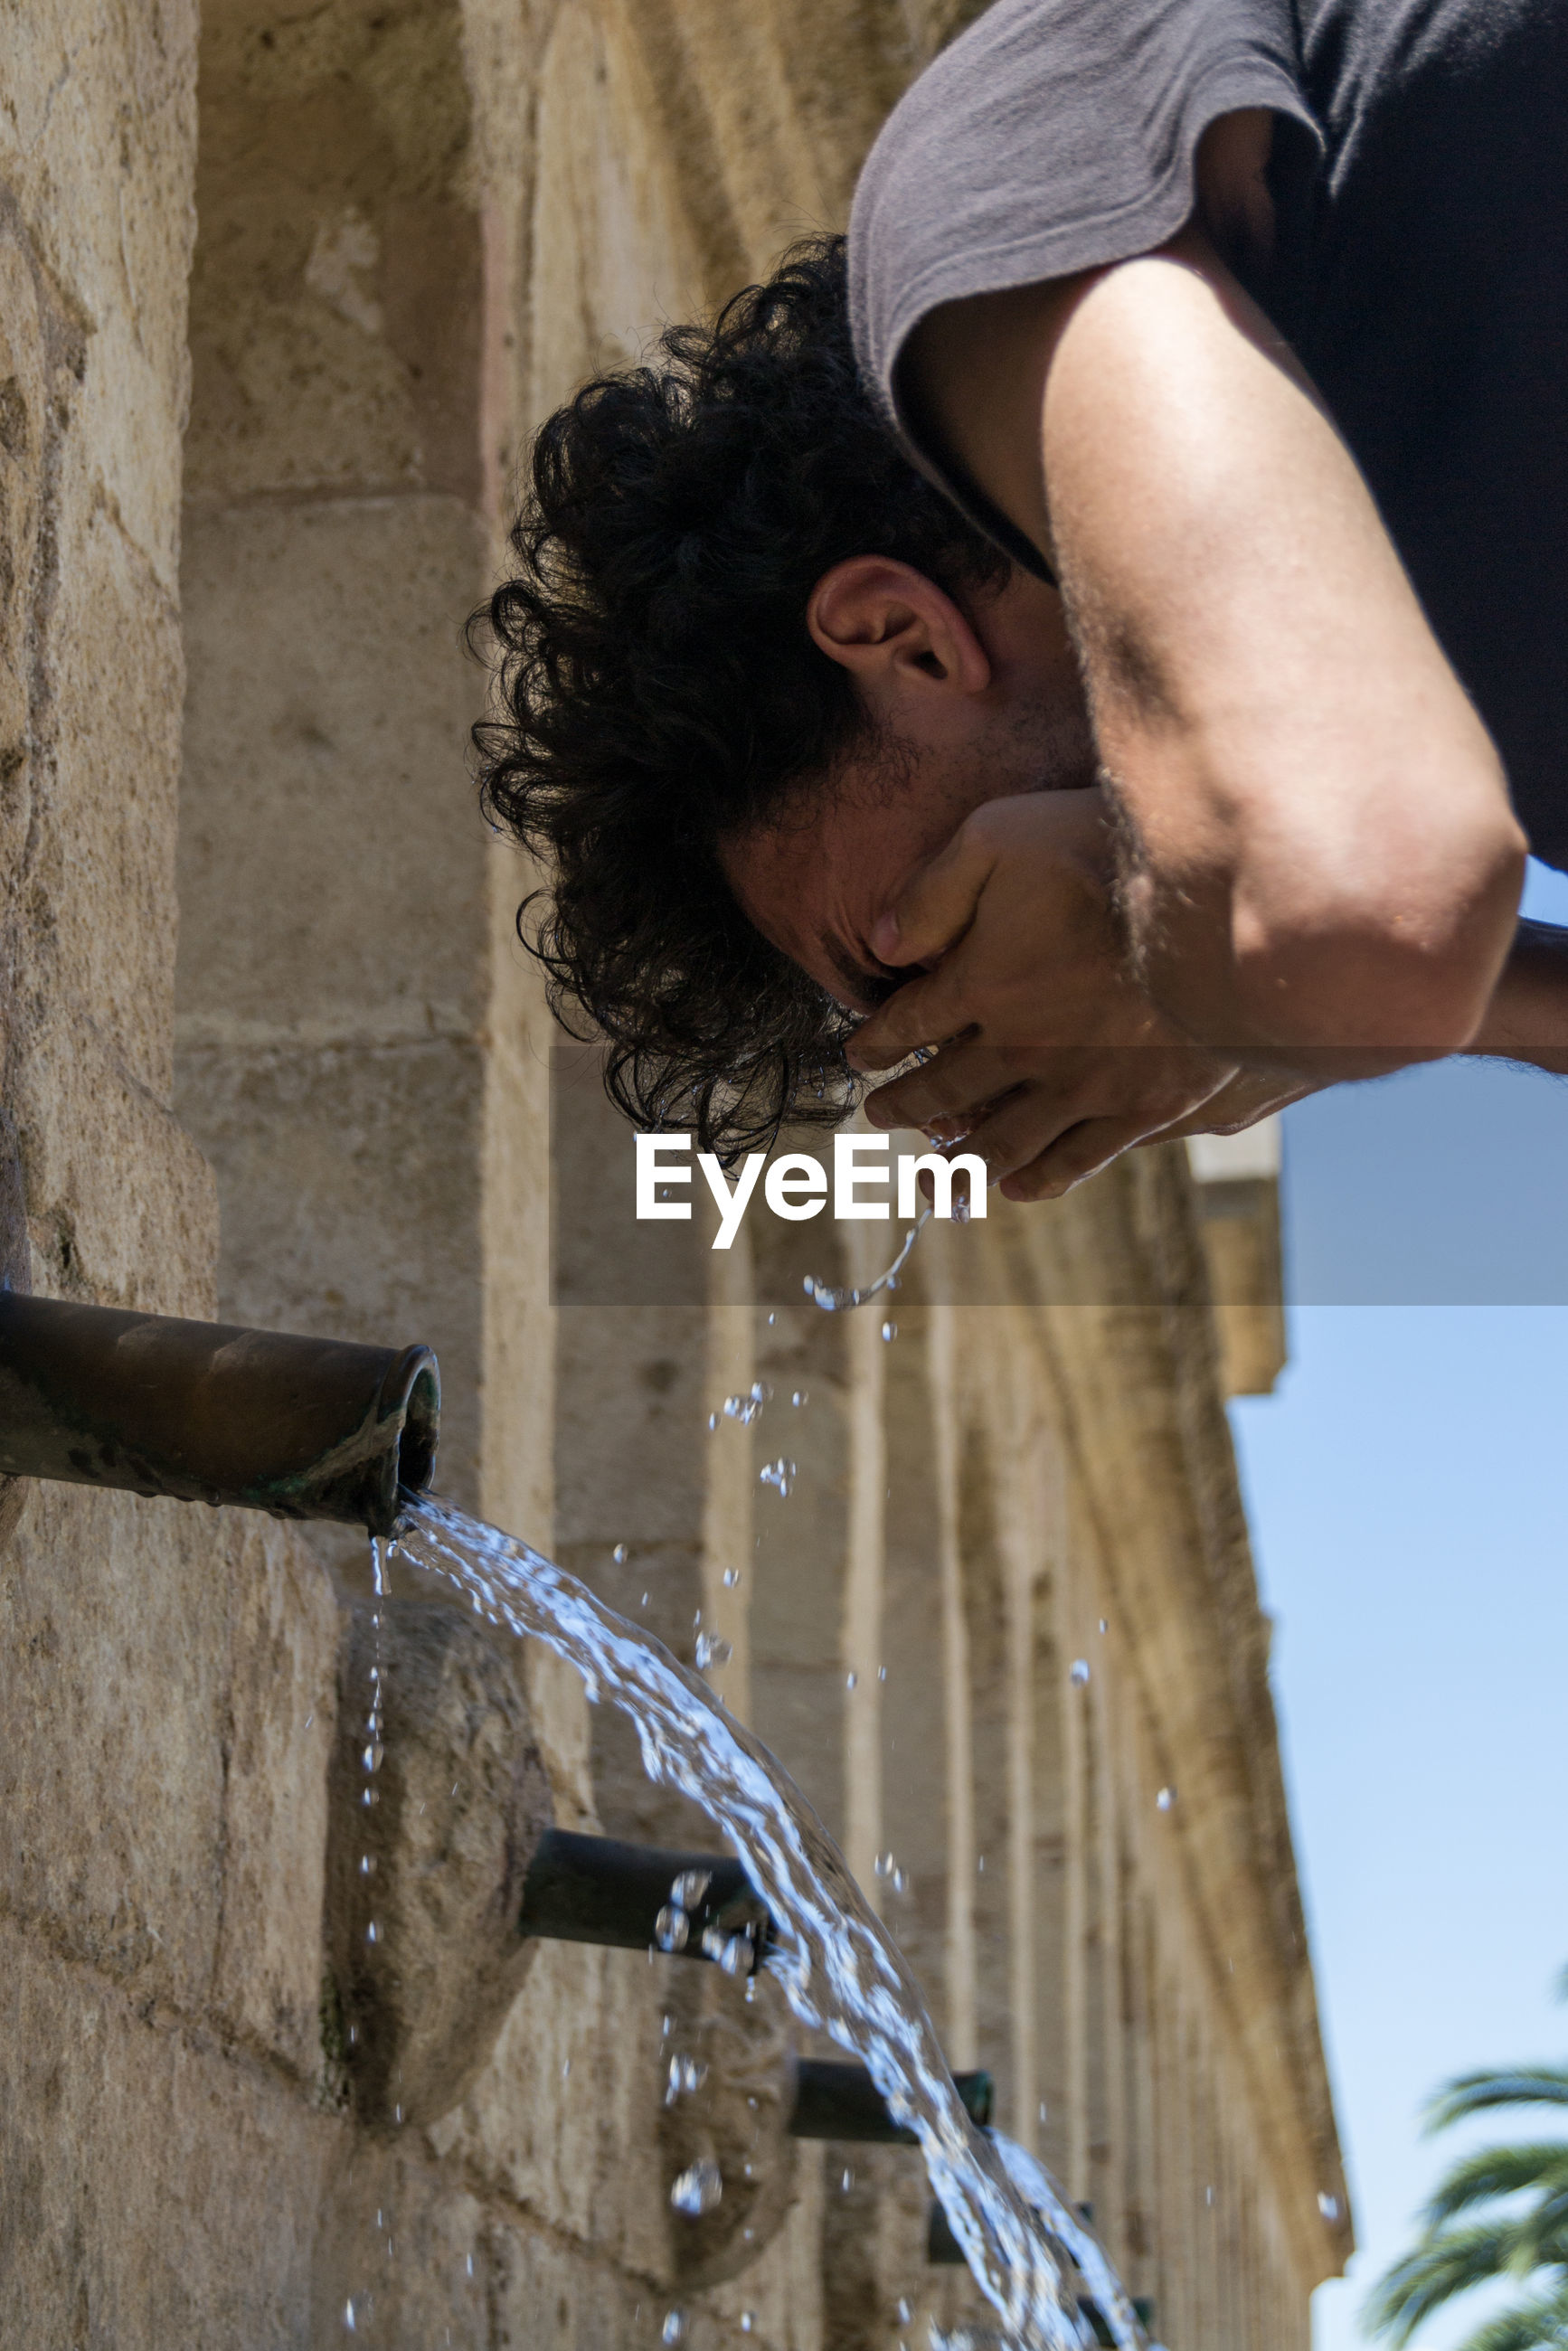 Low angle view of man washing face at drinking fountain